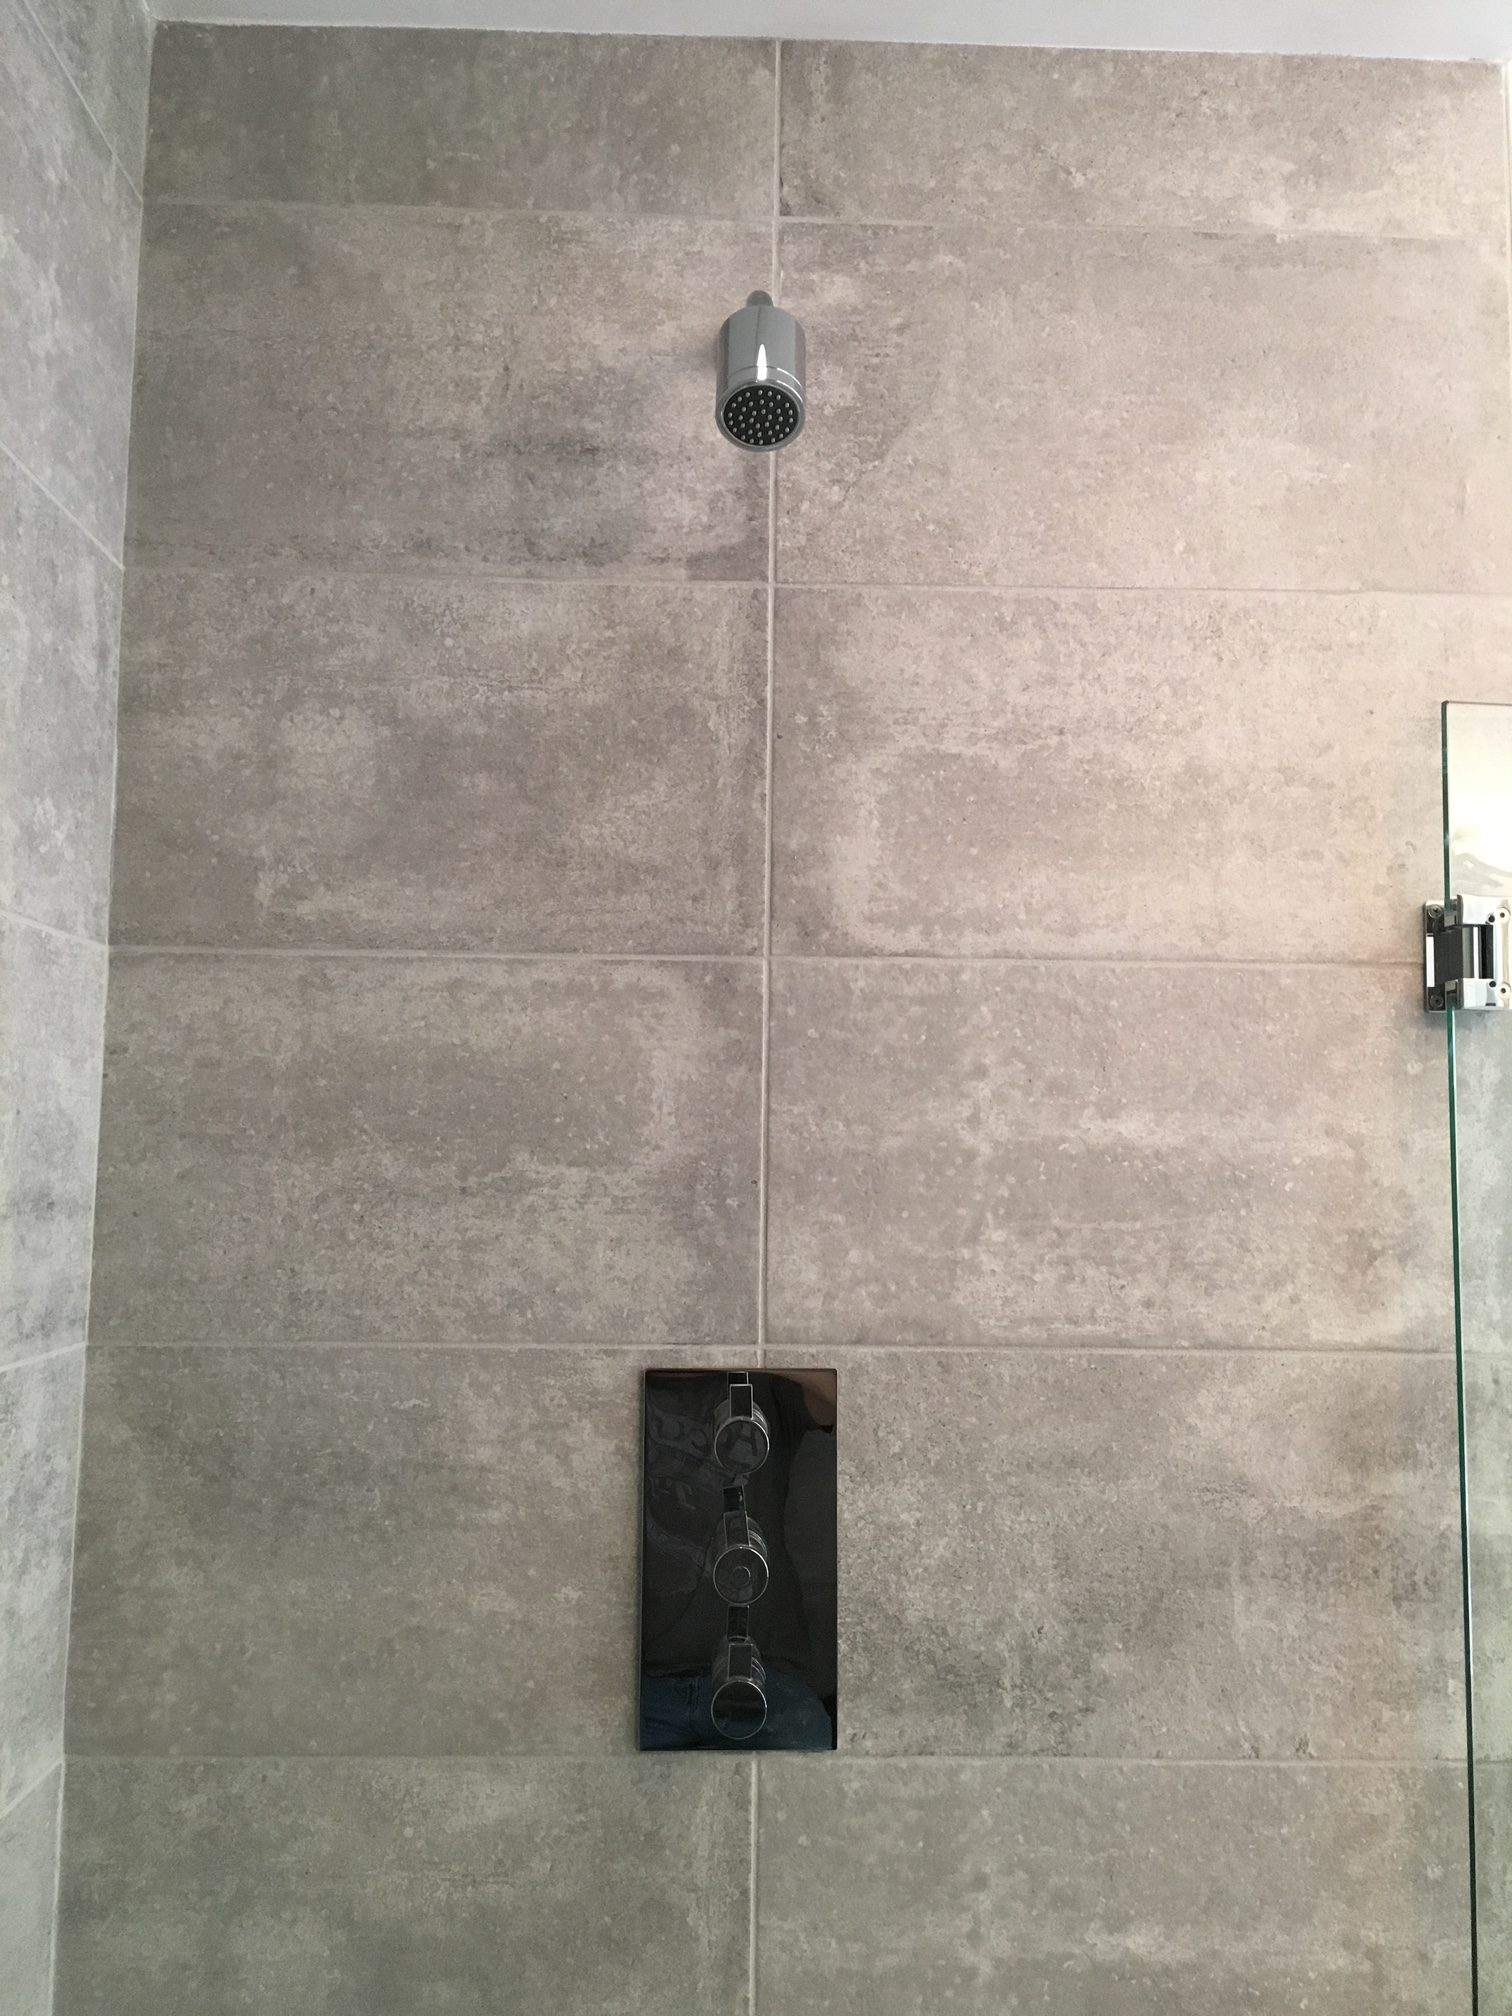 Summerfield Rain and Shower Head